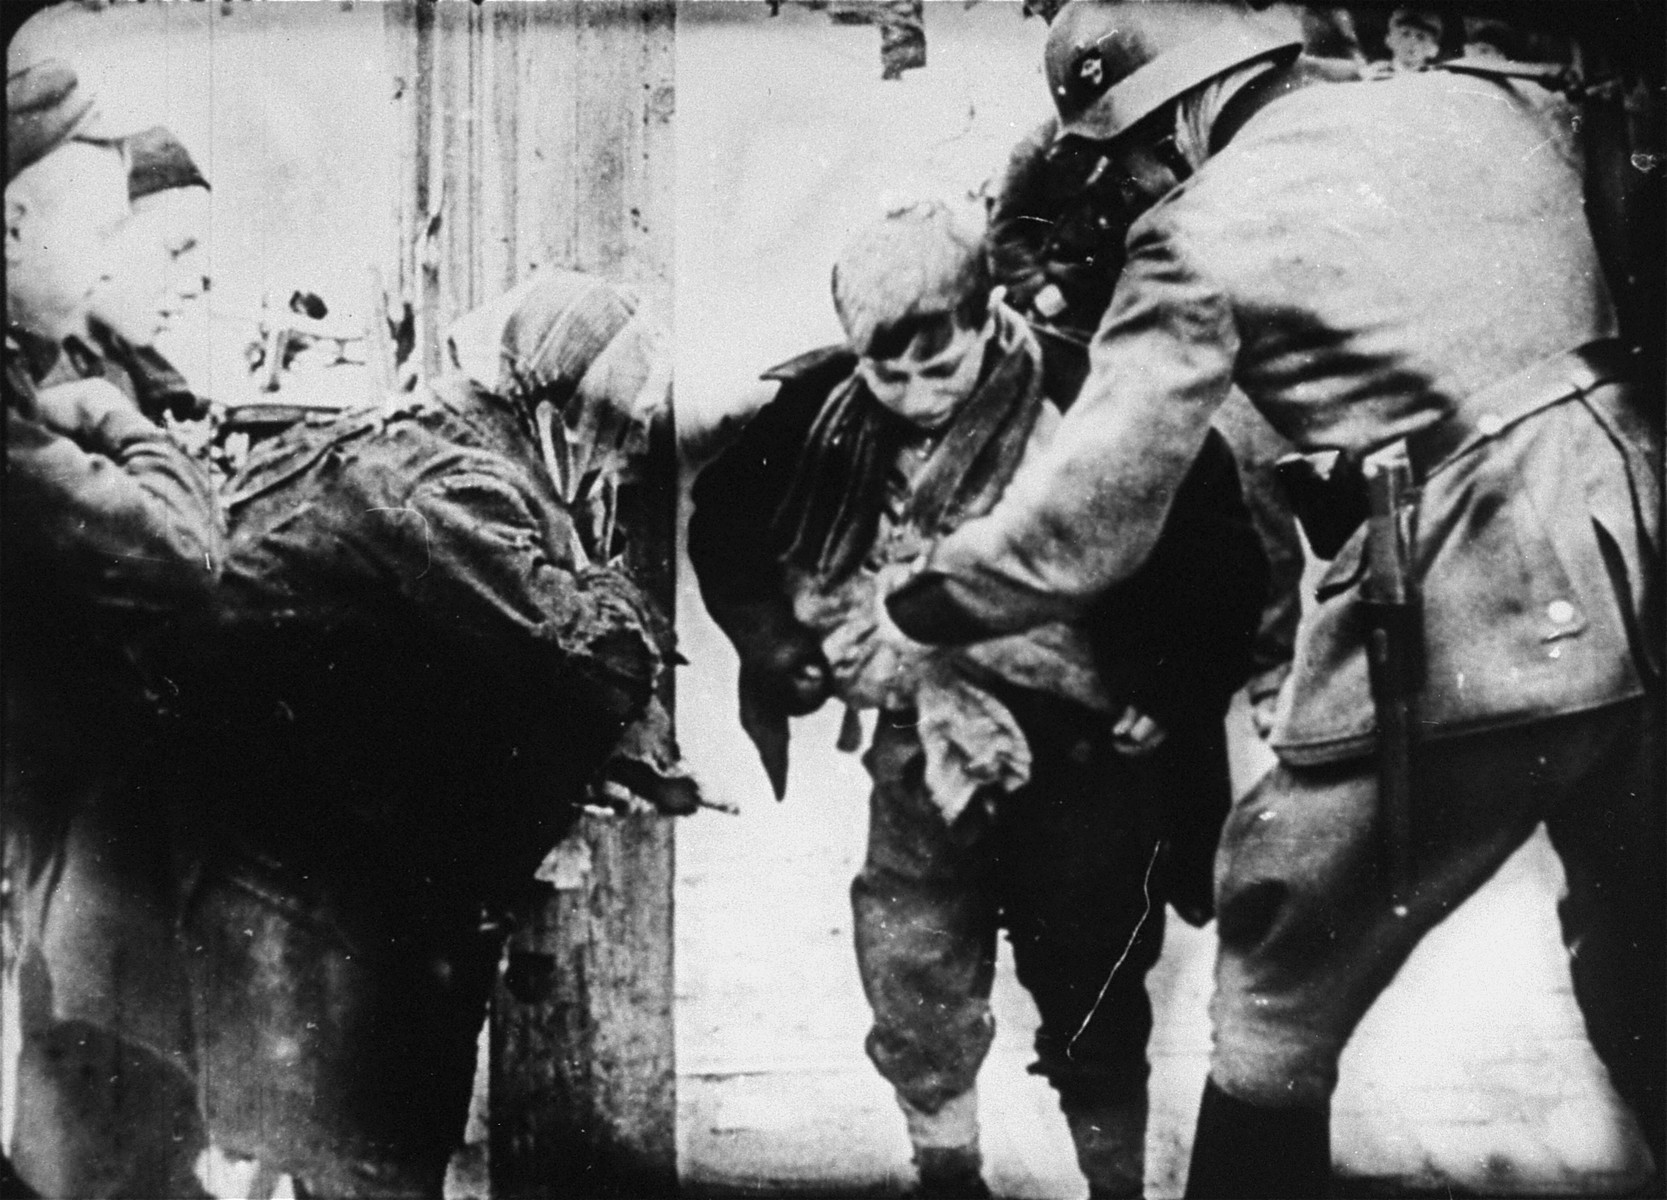 A young boy is caught smuggling in the Warsaw ghetto by a German policeman.